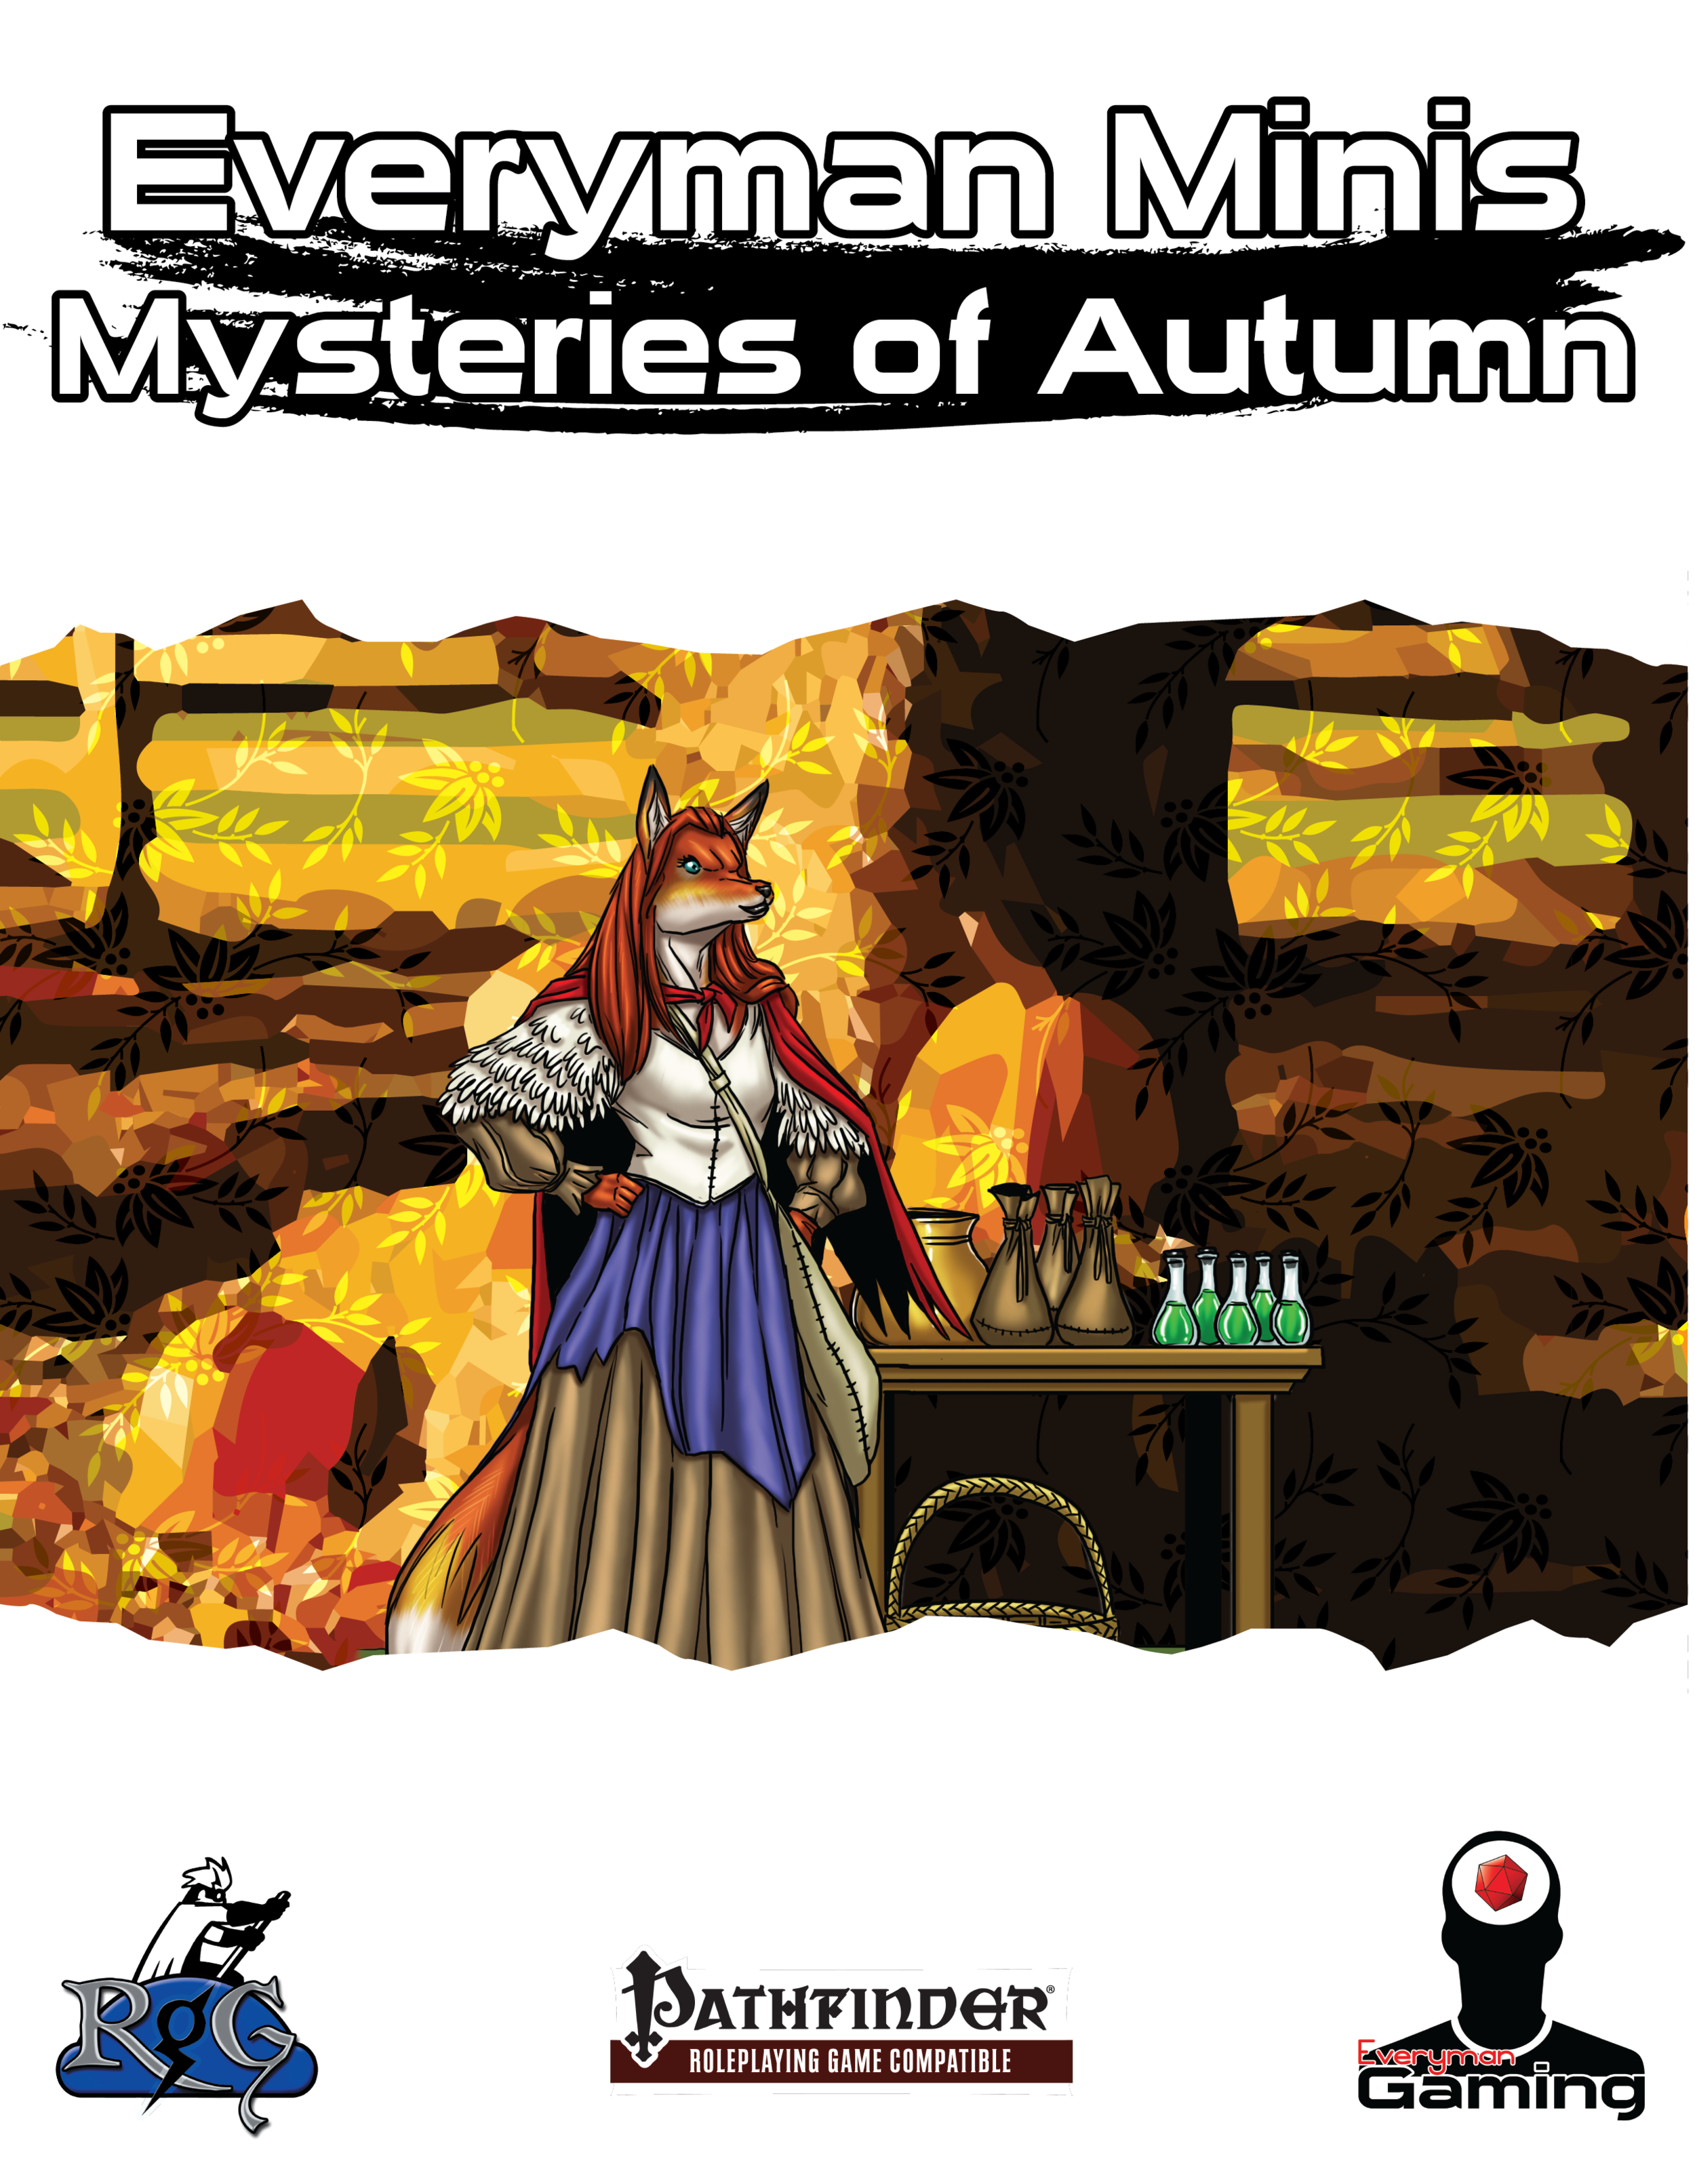 34 EMM Mysteries of Autumn.png